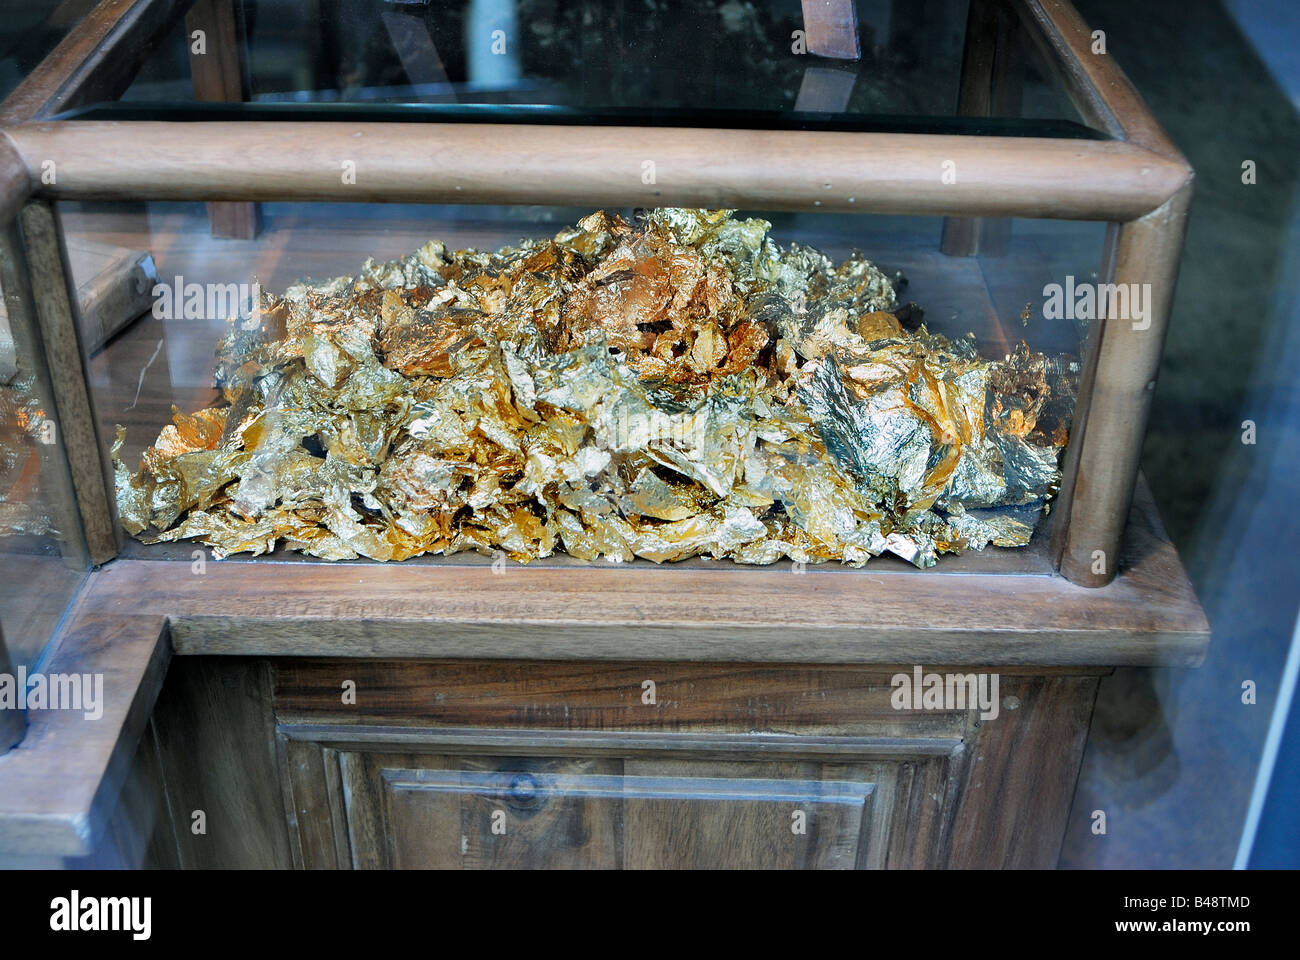 Paris France, Shopping, French Picture Framing Store Gold Leaf in Display case - Stock Image